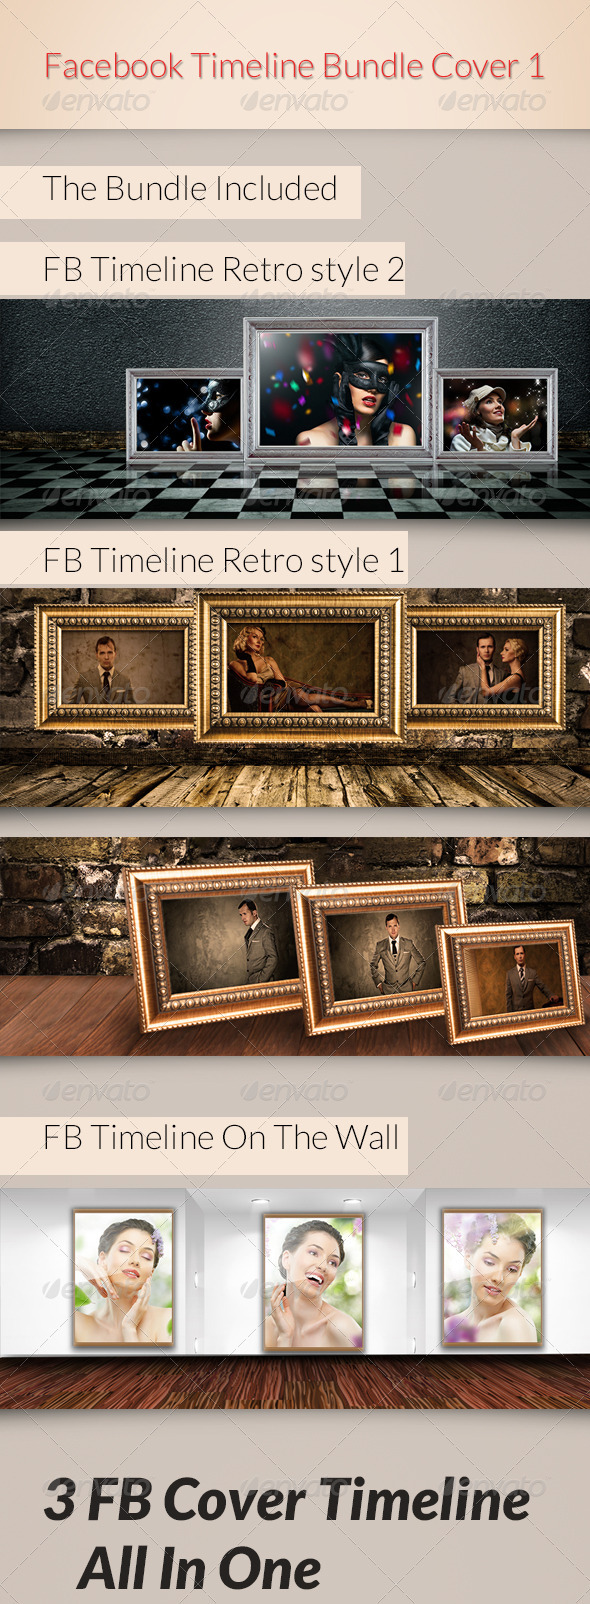 FB Timeline Bundle Cover 1 - Facebook Timeline Covers Social Media